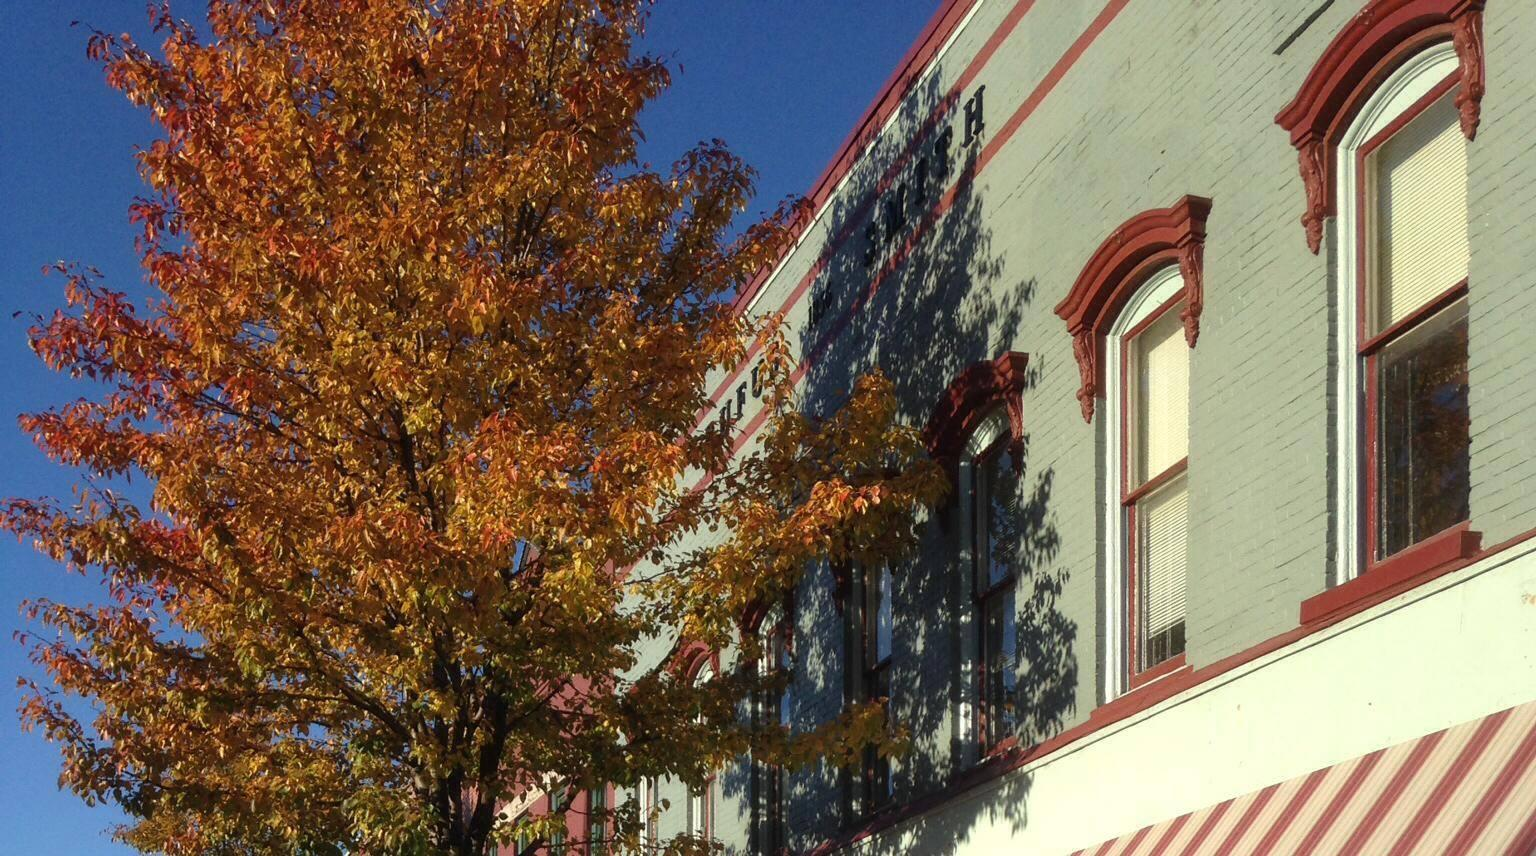 Fall on Main Street in Perry.